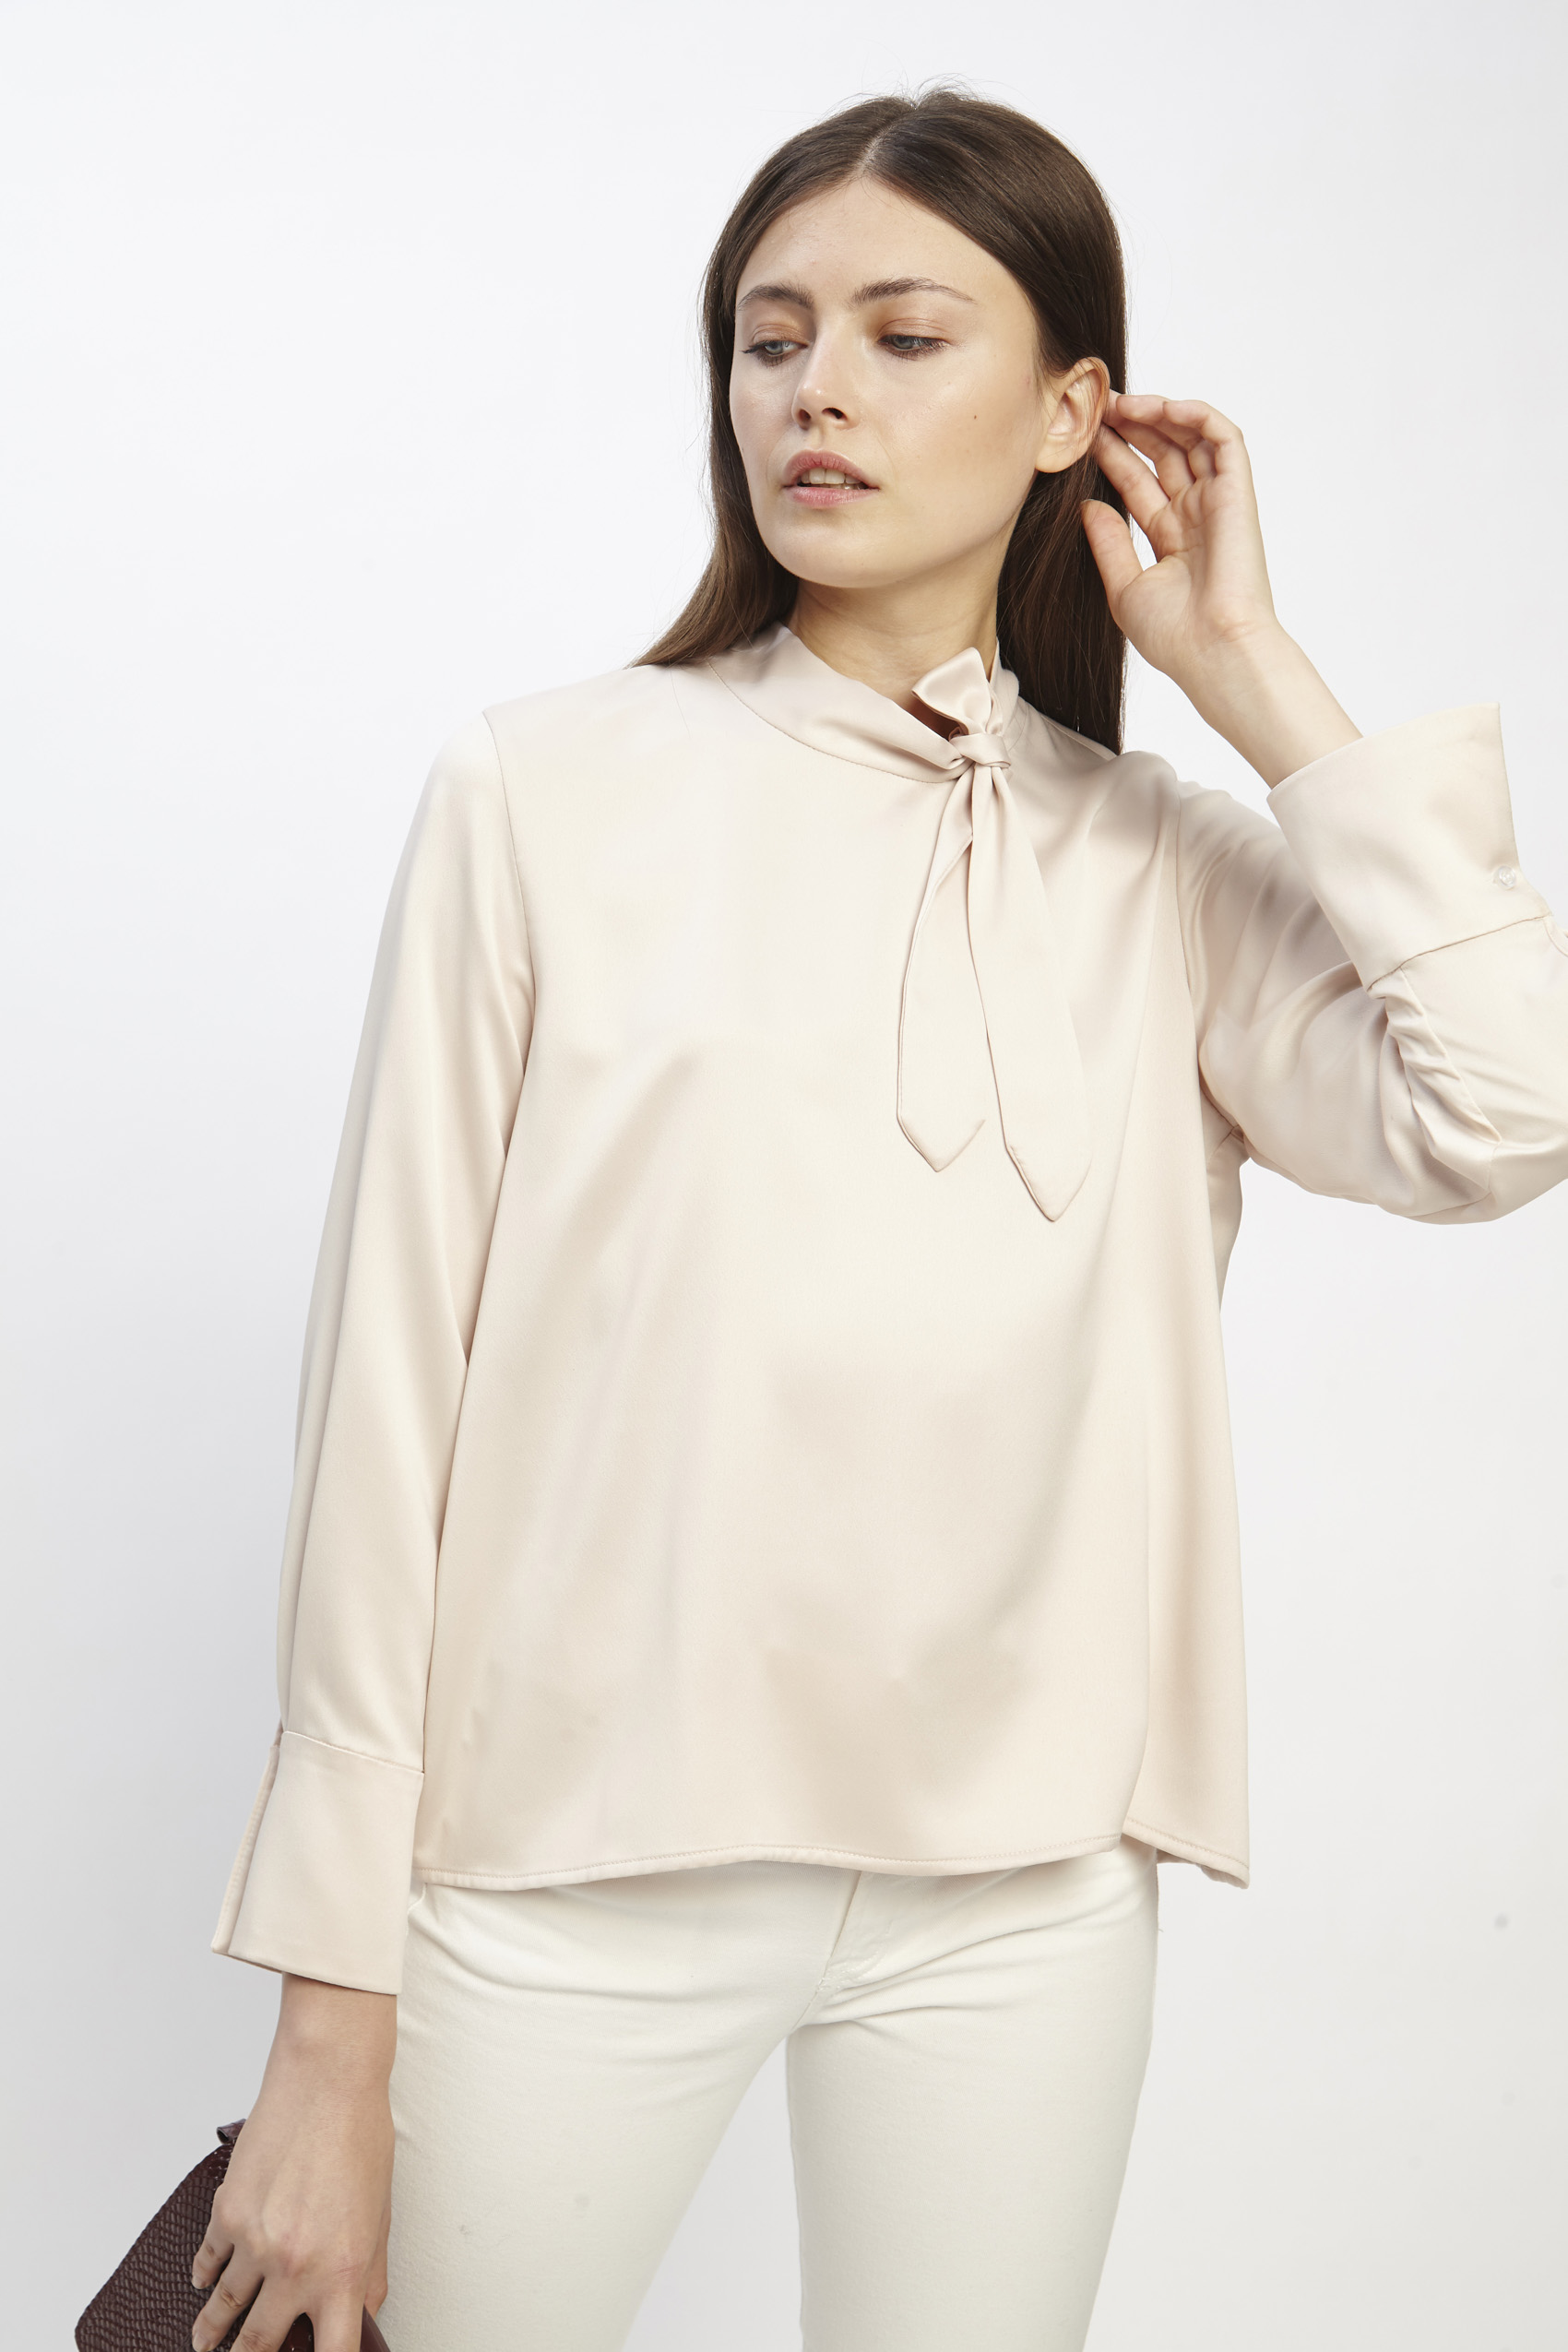 awada_blusa-helena_28-31-2020__picture-1849